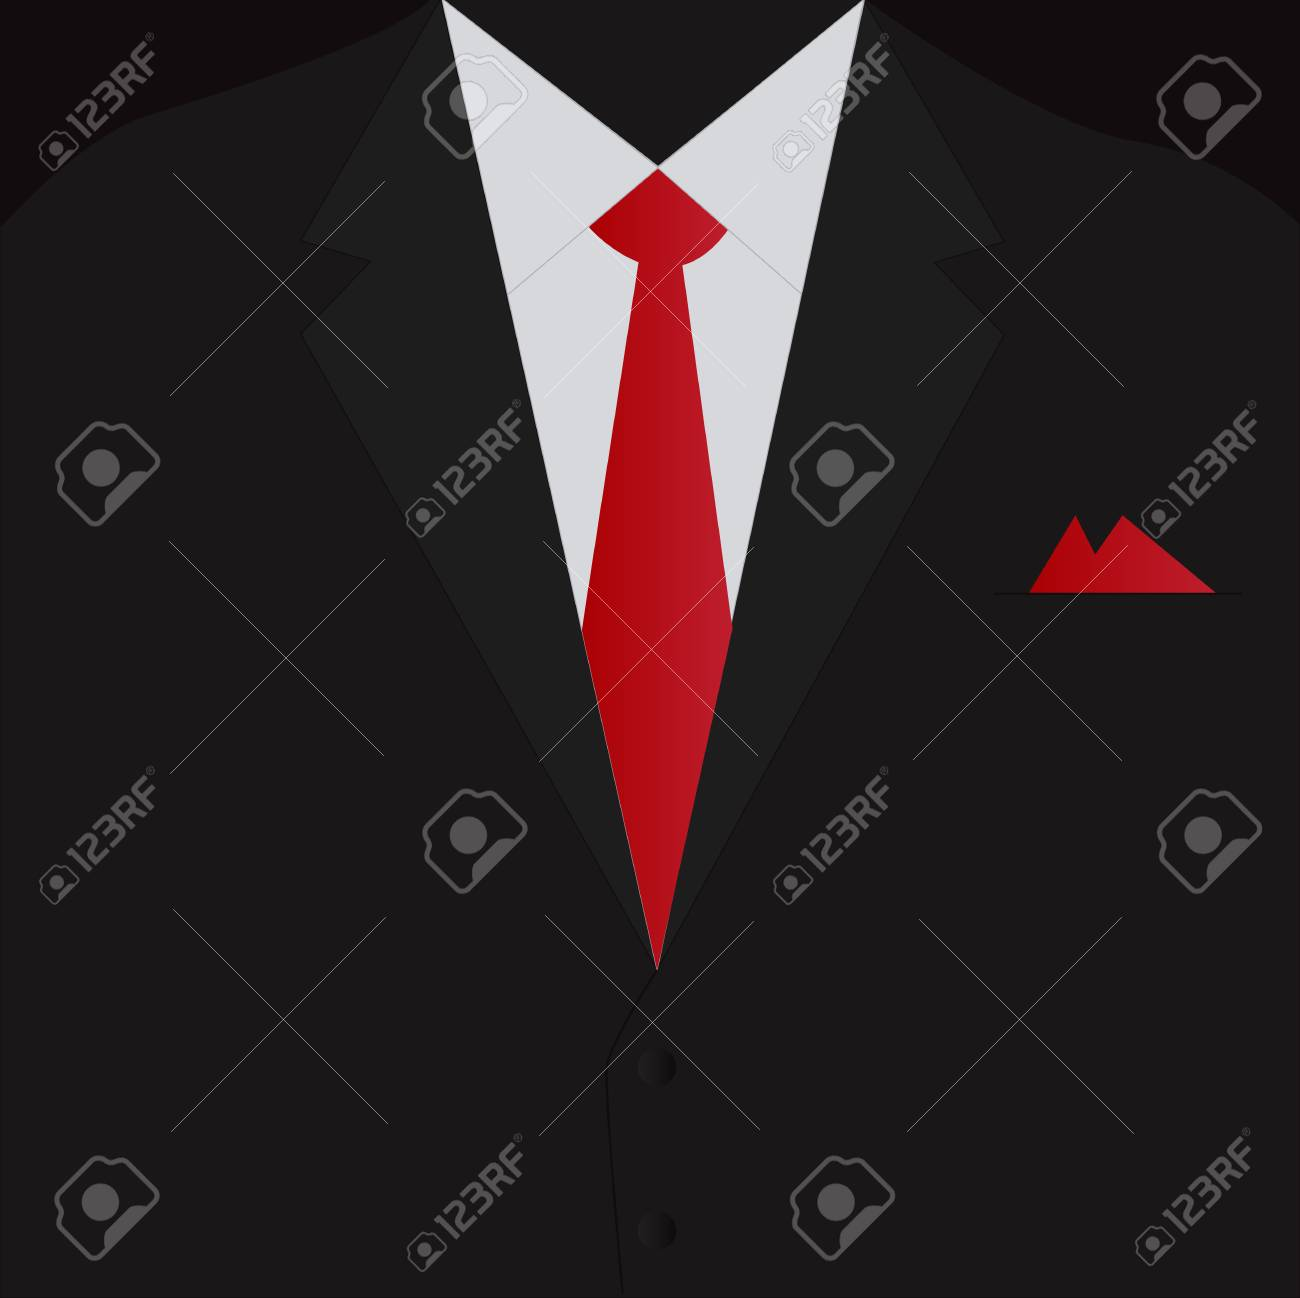 Illustration of a black business suit and red tie. - 97016393